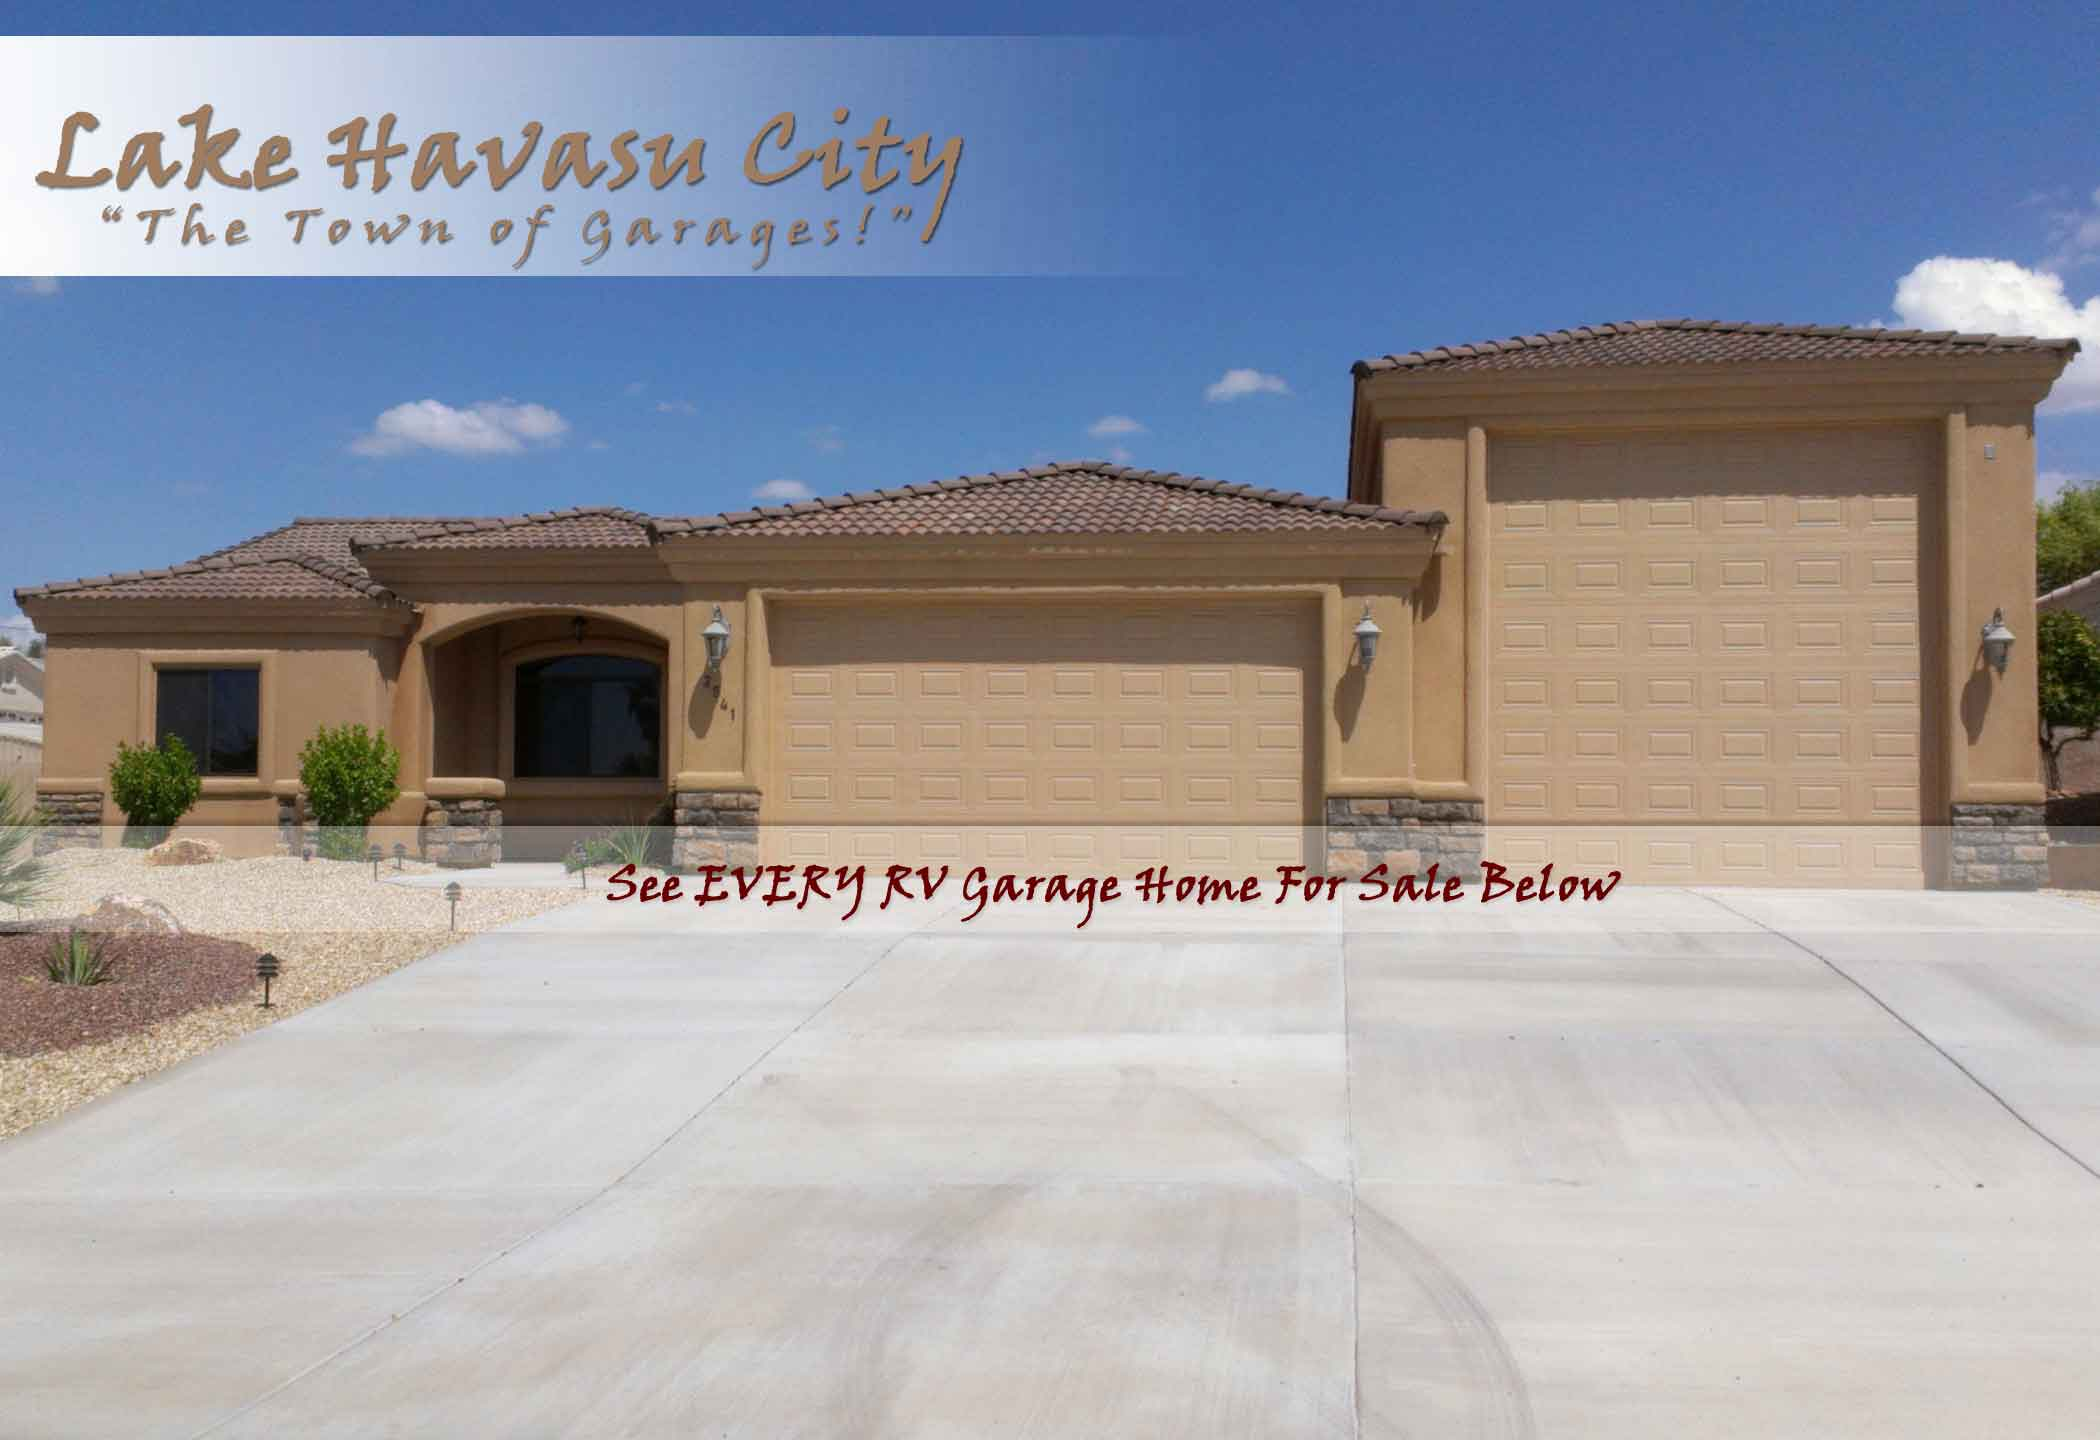 Rv garage homes for sale in lake havasu for Rv garage